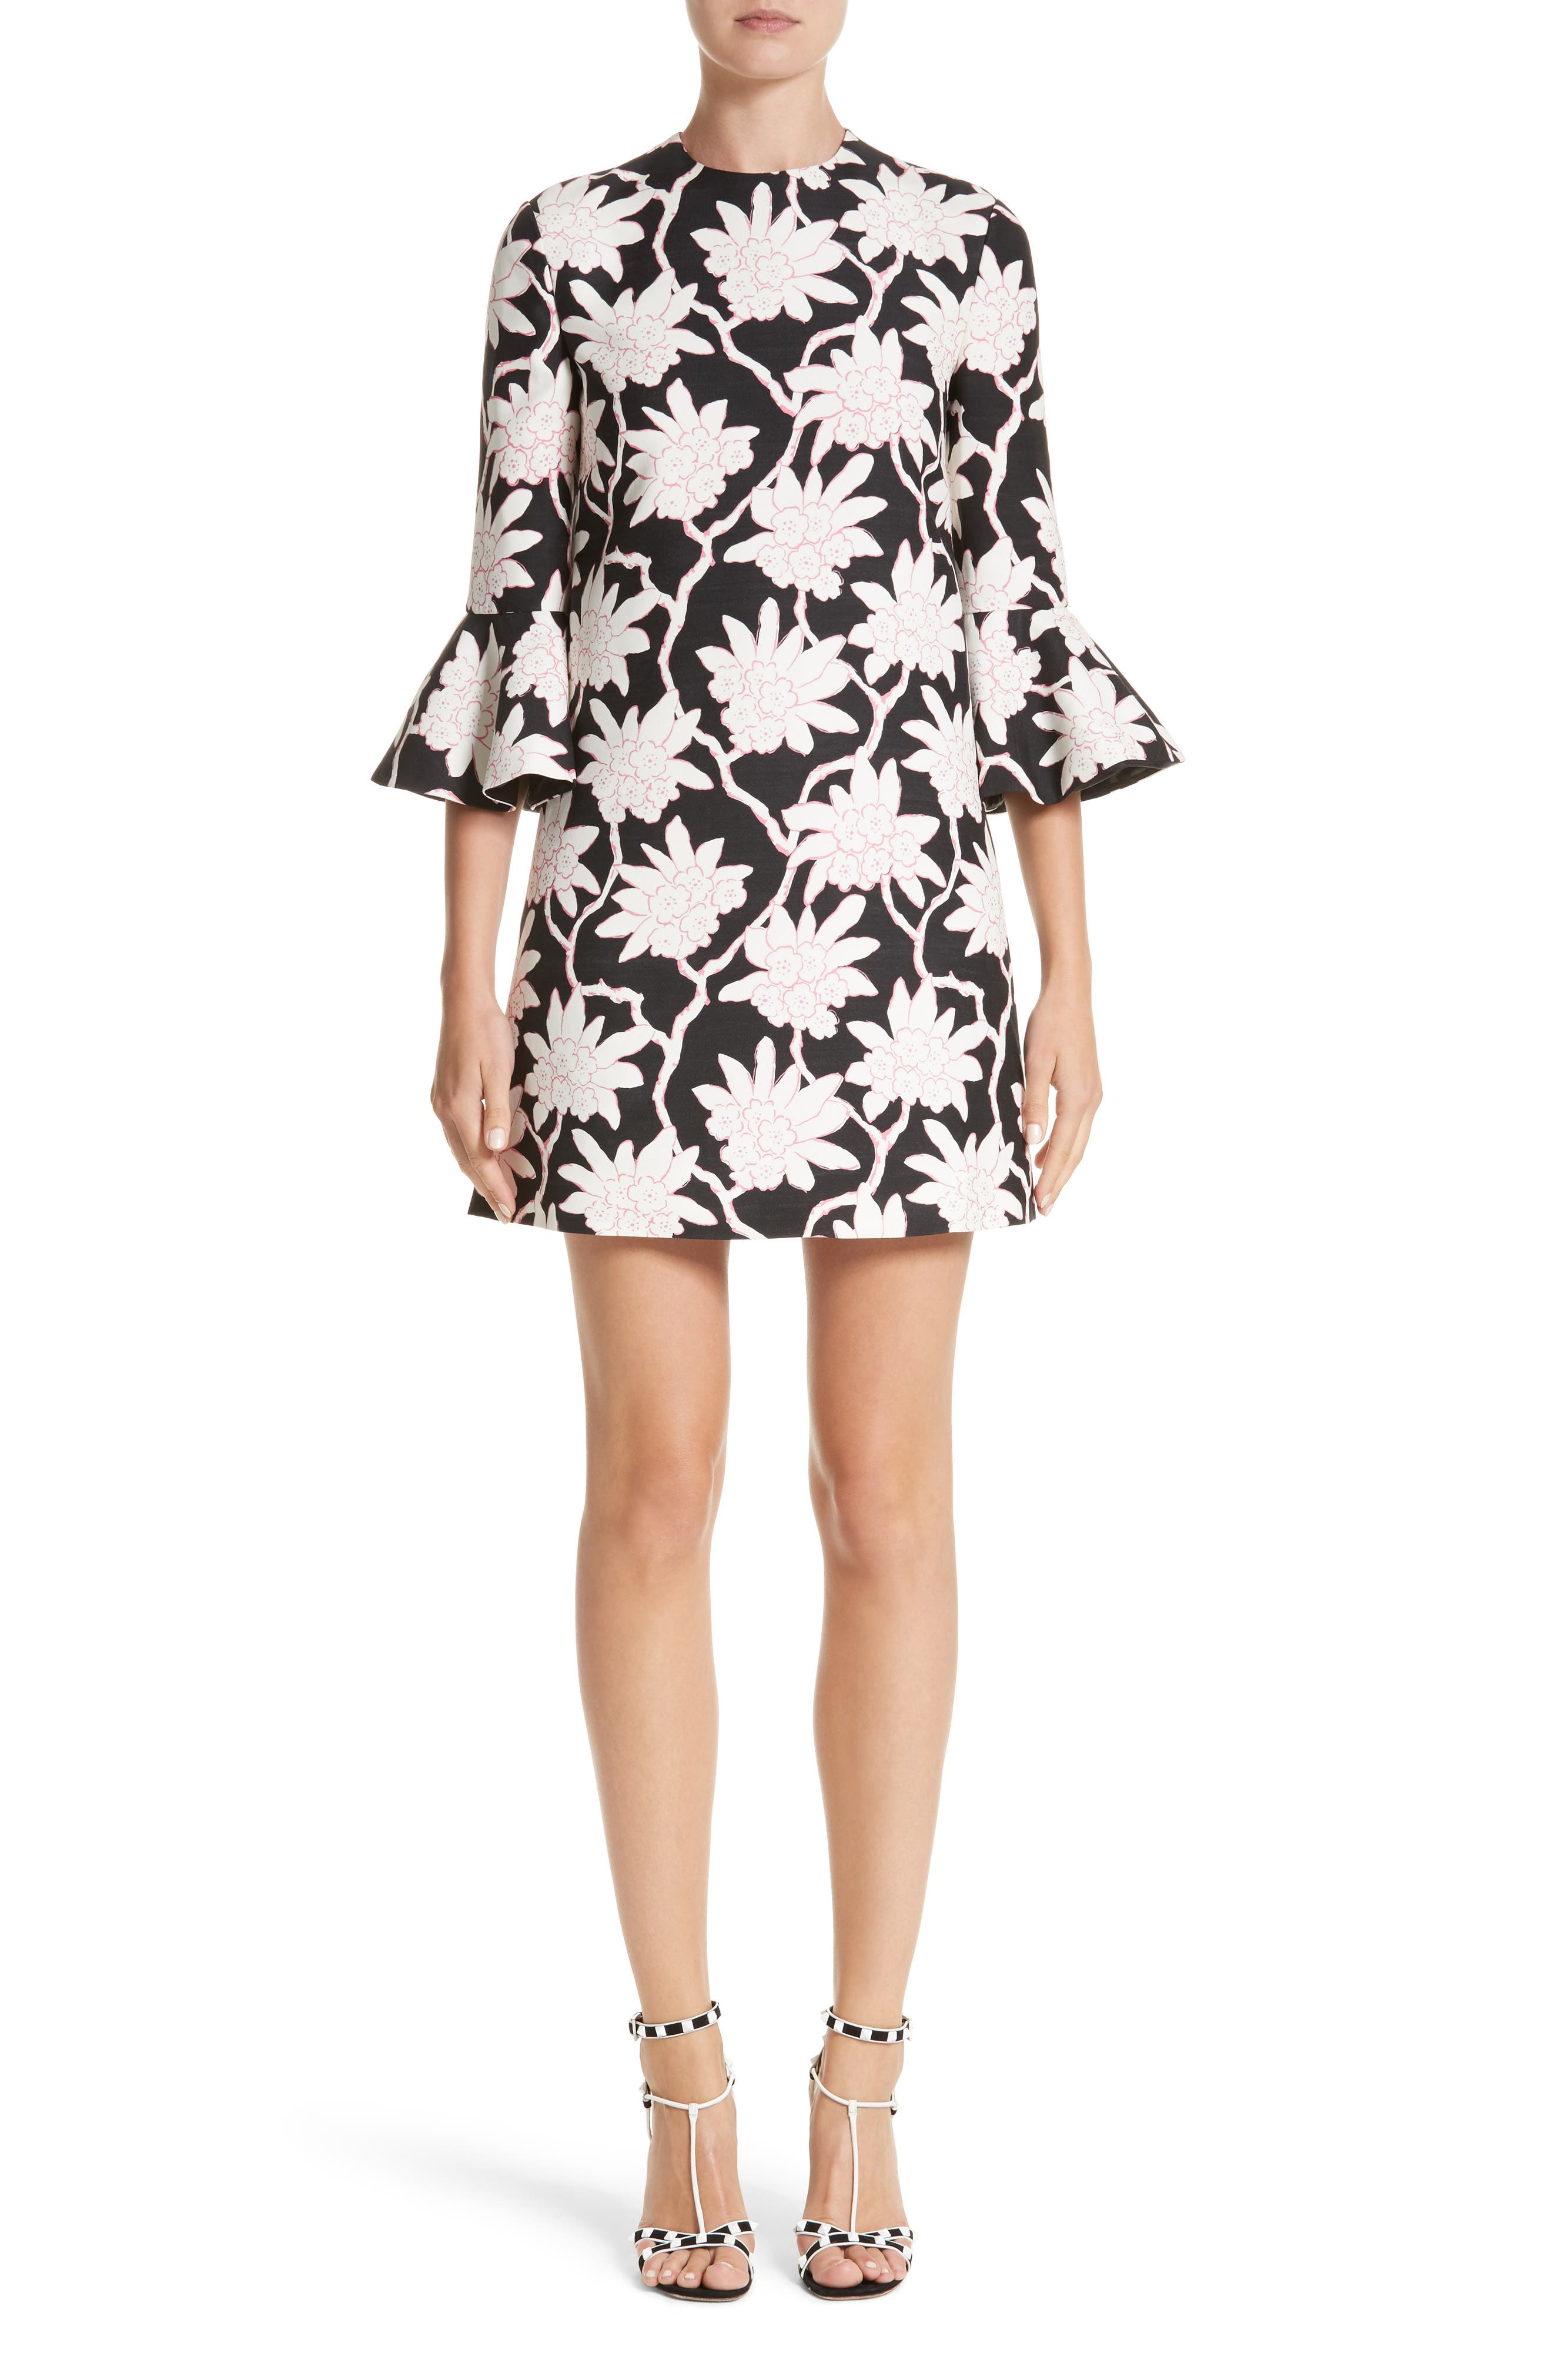 Rhododendron Print Wool & Silk Dress,                         Main,                         color, Black